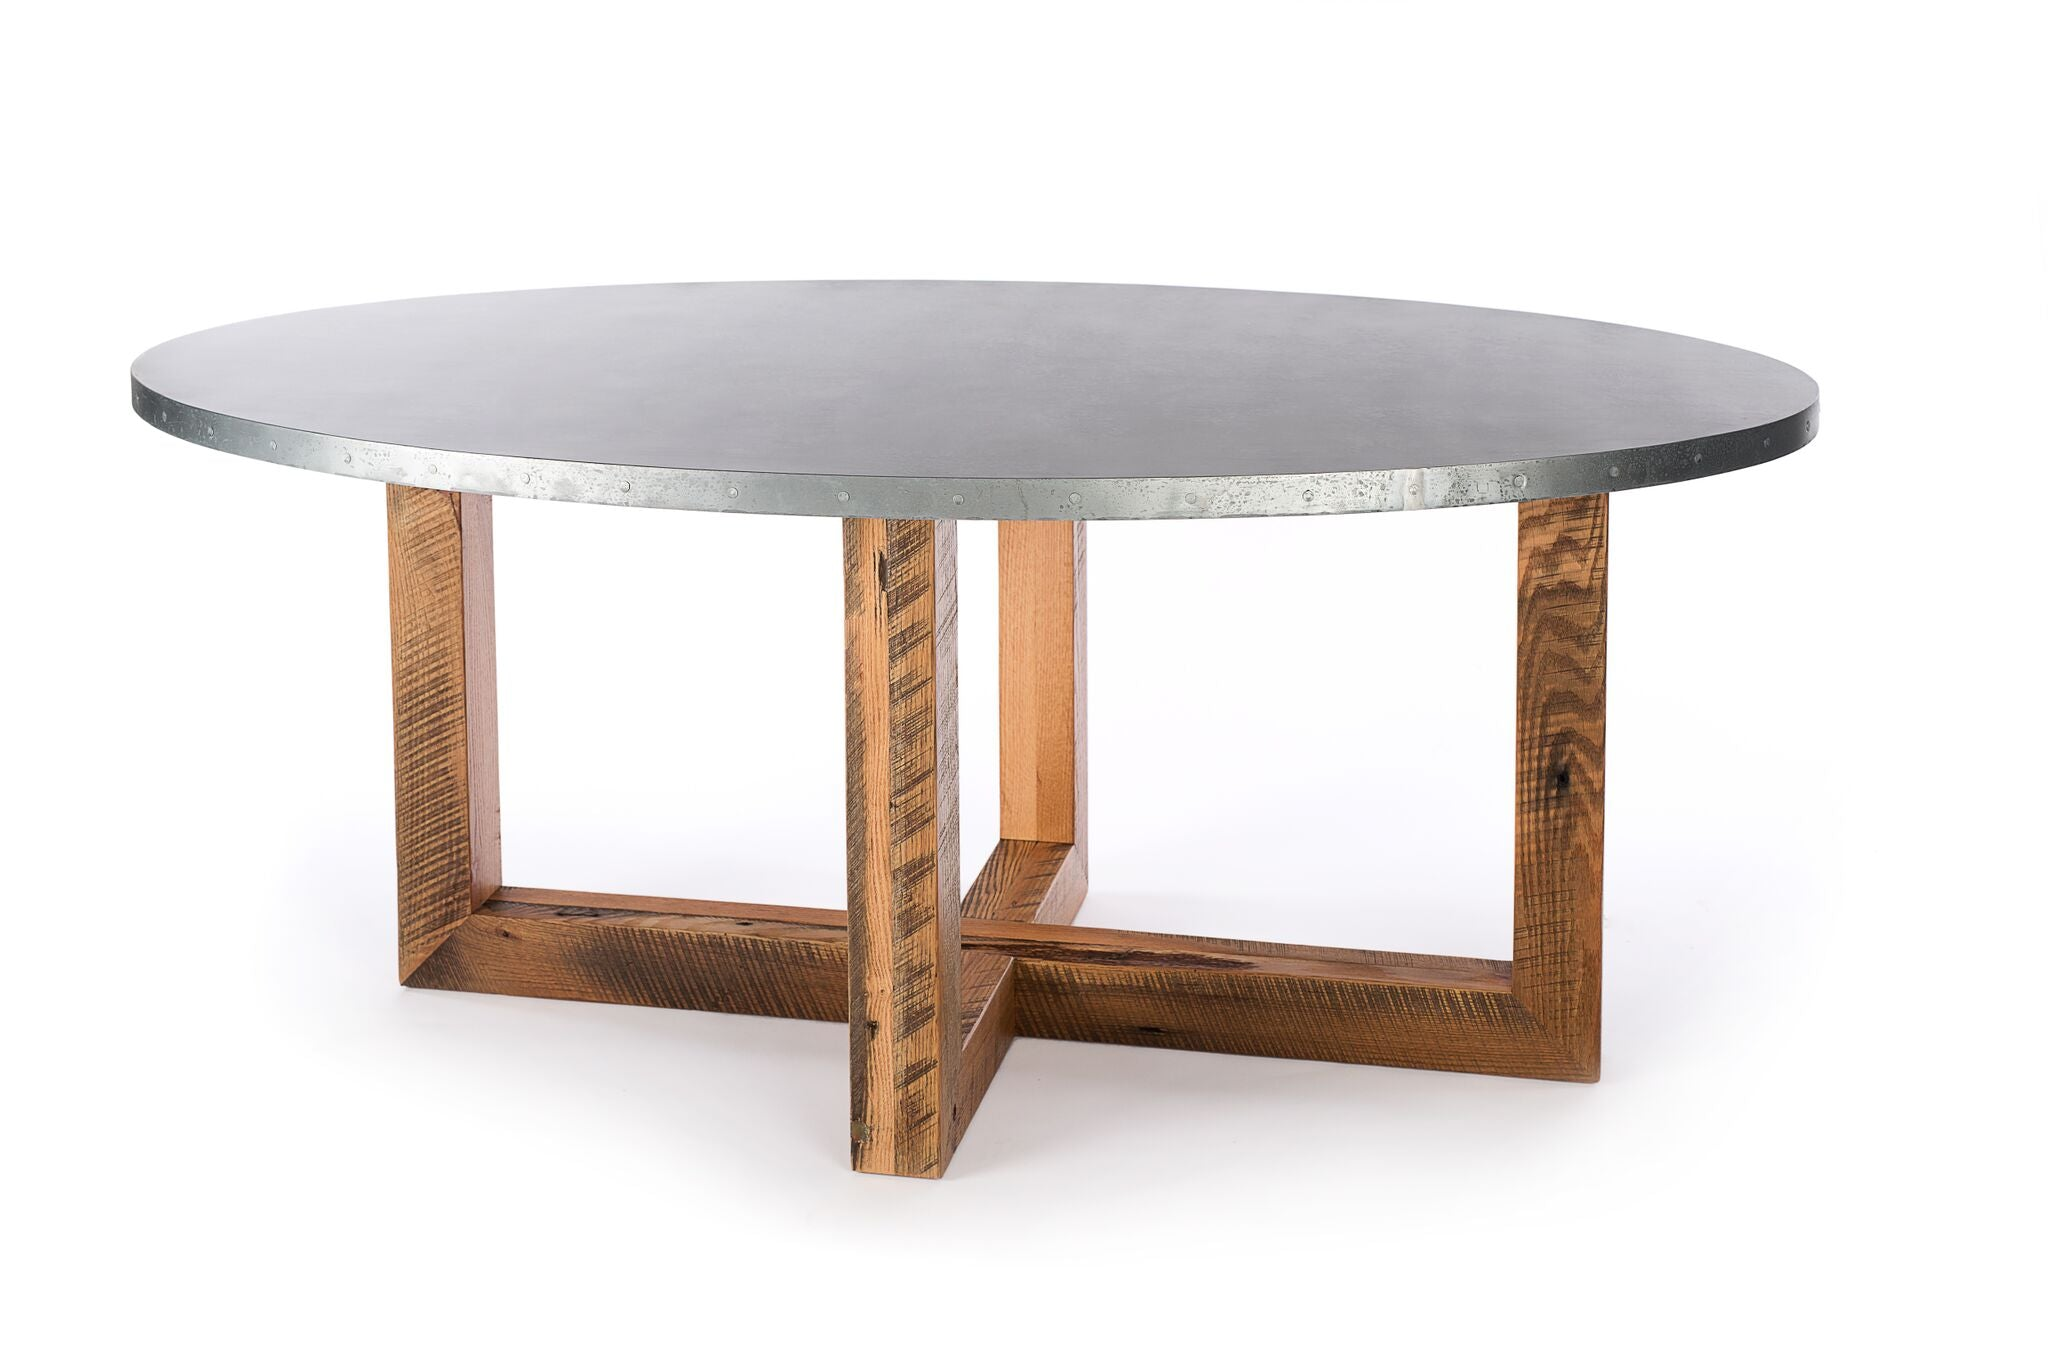 Zinc Oval Tables | Winston Table | CLASSIC | Natural Ash | CUSTOM SIZE L 60.00 W 37.00 H undefined |